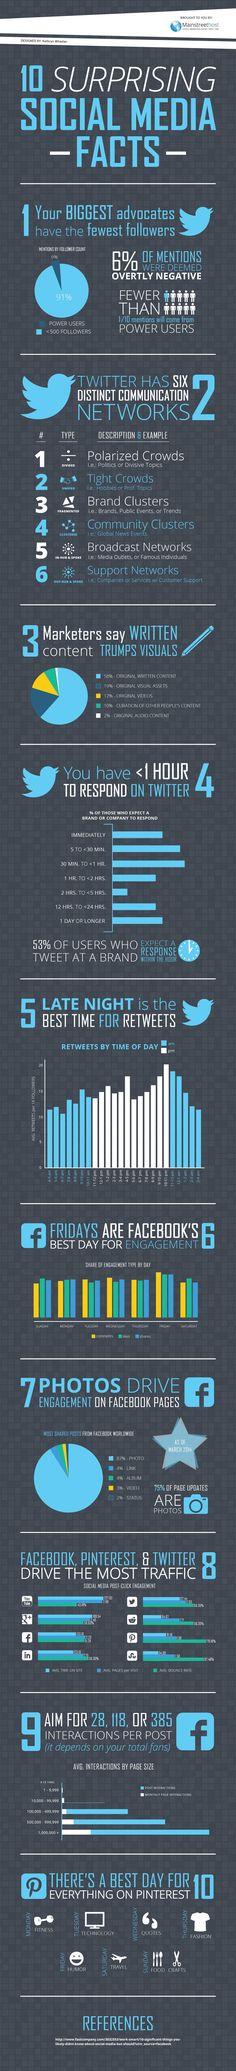 10 Surprising Social Media Facts   #infographic #Twitter #Facebook #Pinterest